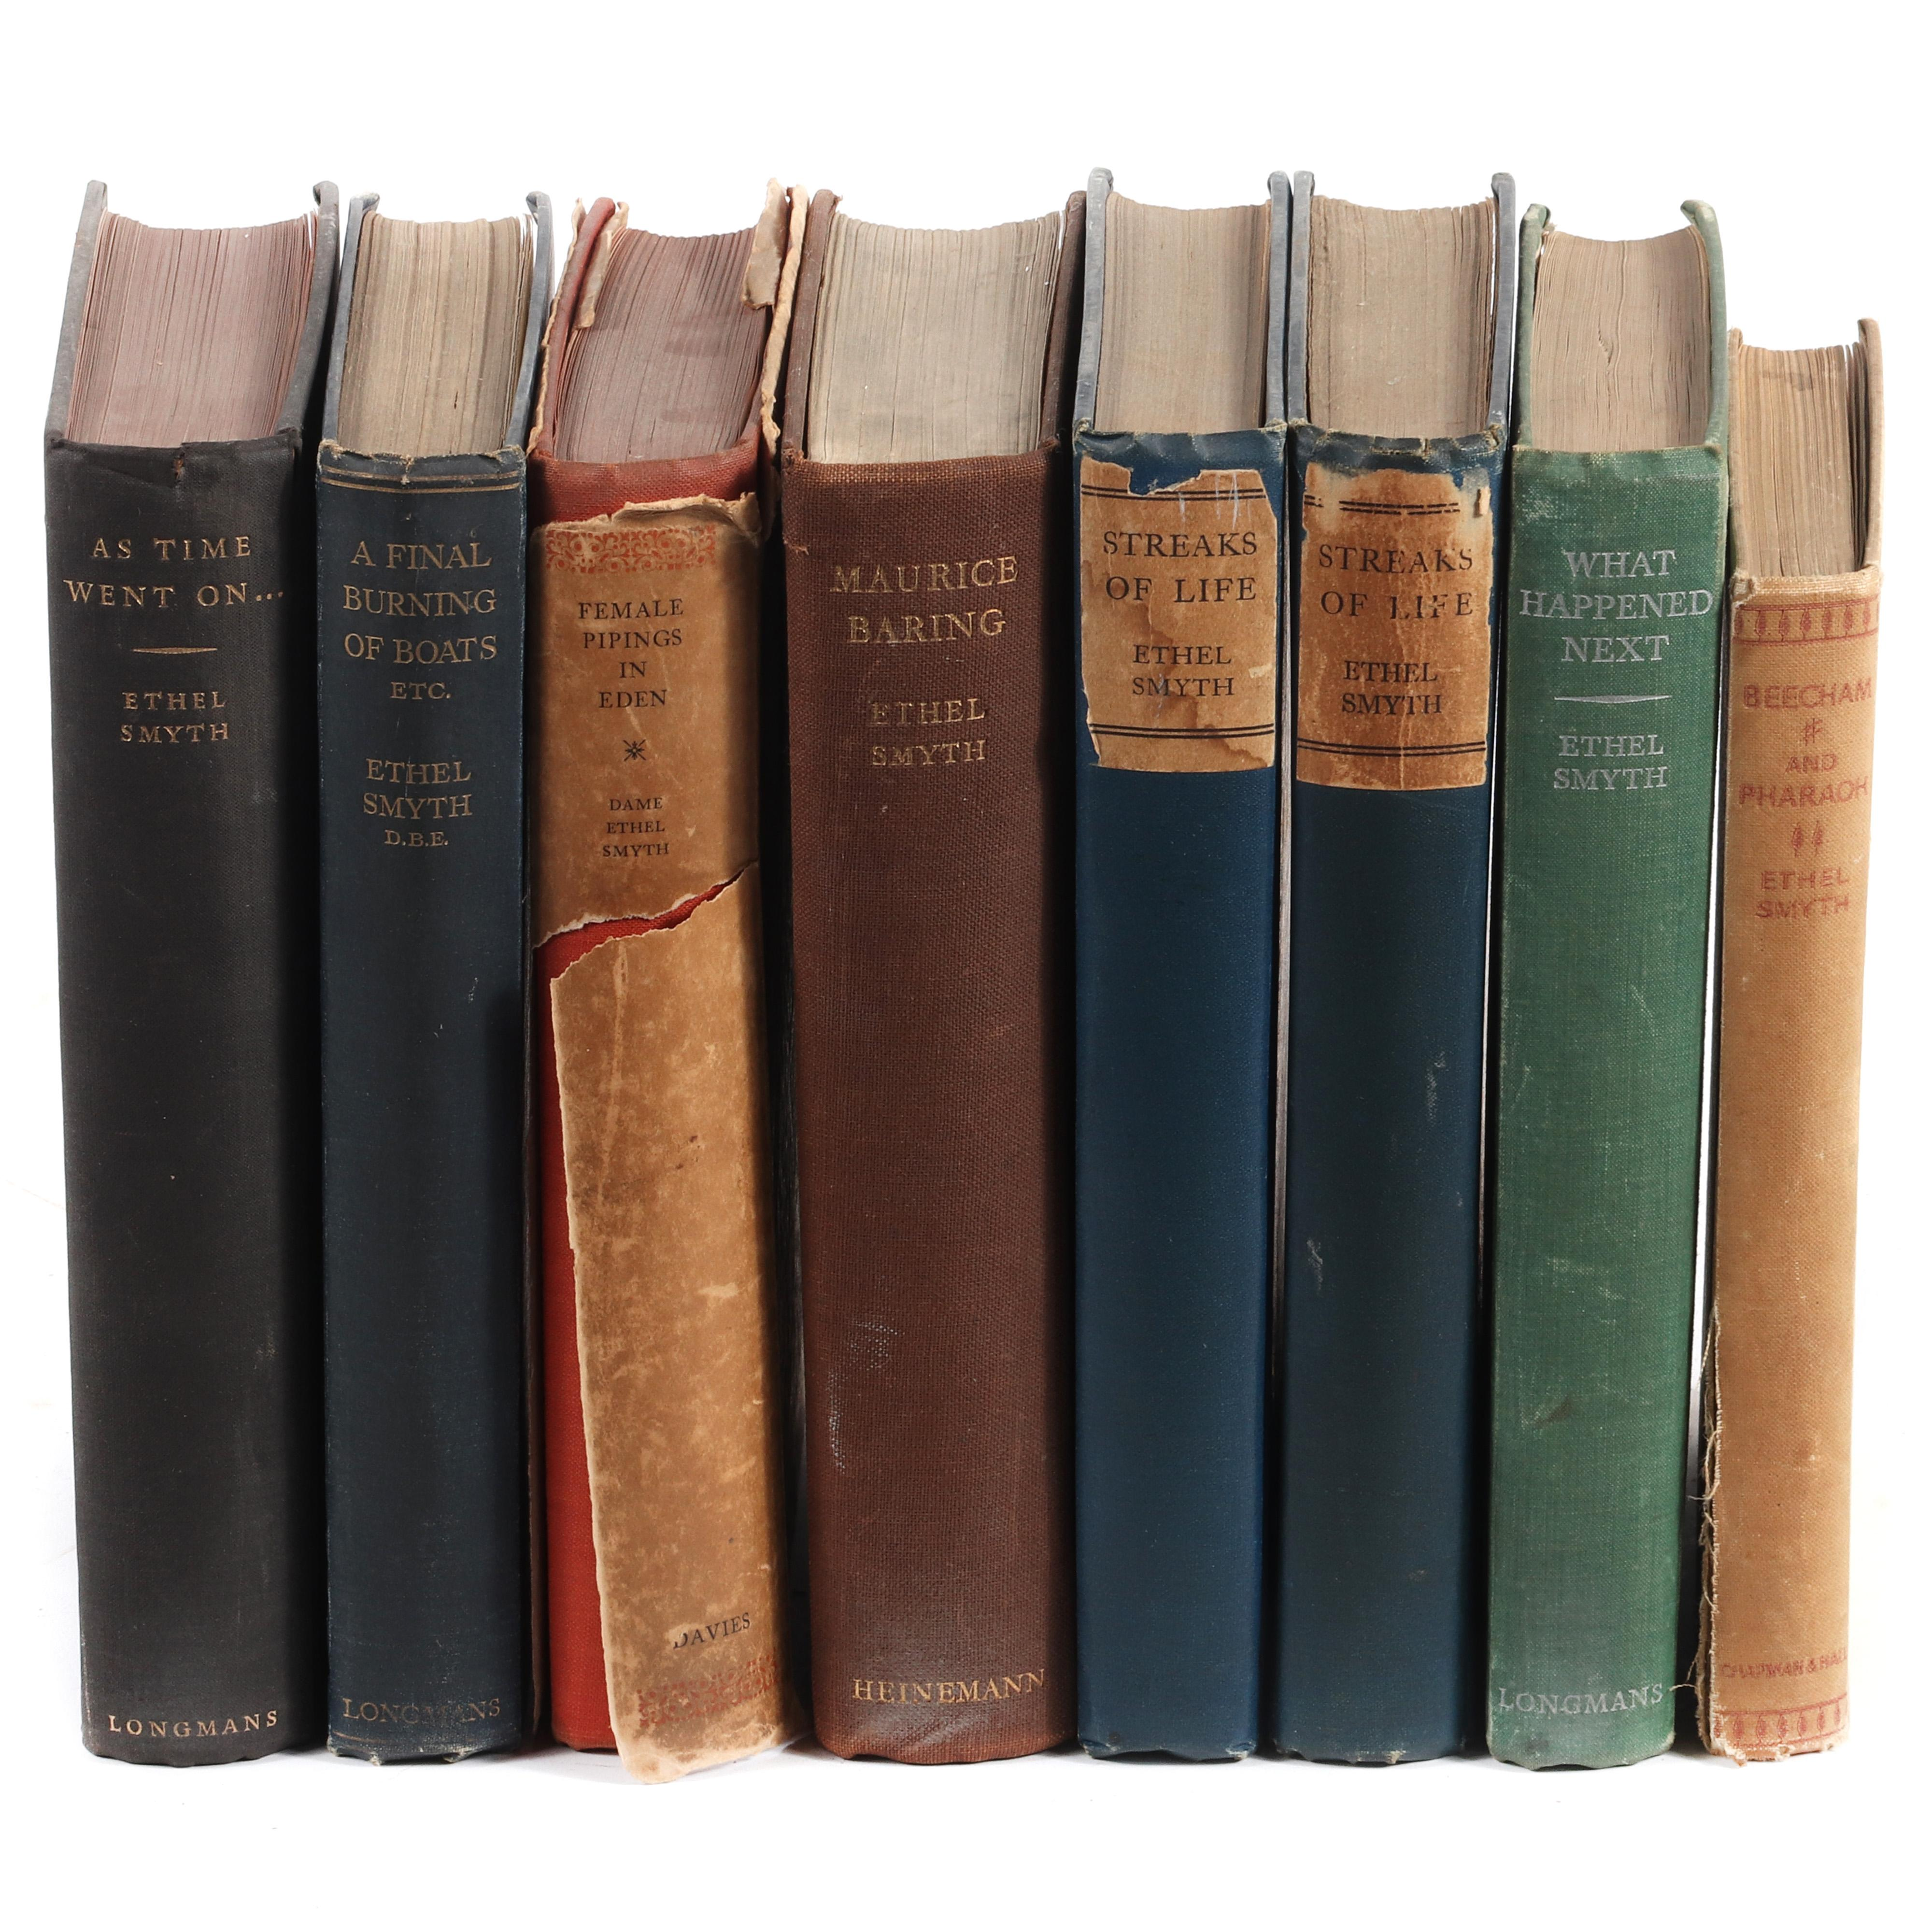 """Eight books by Dame Ethel Smyth (1858-1944) including A Final Burning of Boats Etc, Female Pipings in Eden, As Time Went On..., What Happened Next, Beecham and Pharaoh, 1 1/4""""H x 6""""W x 9""""D (average)"""